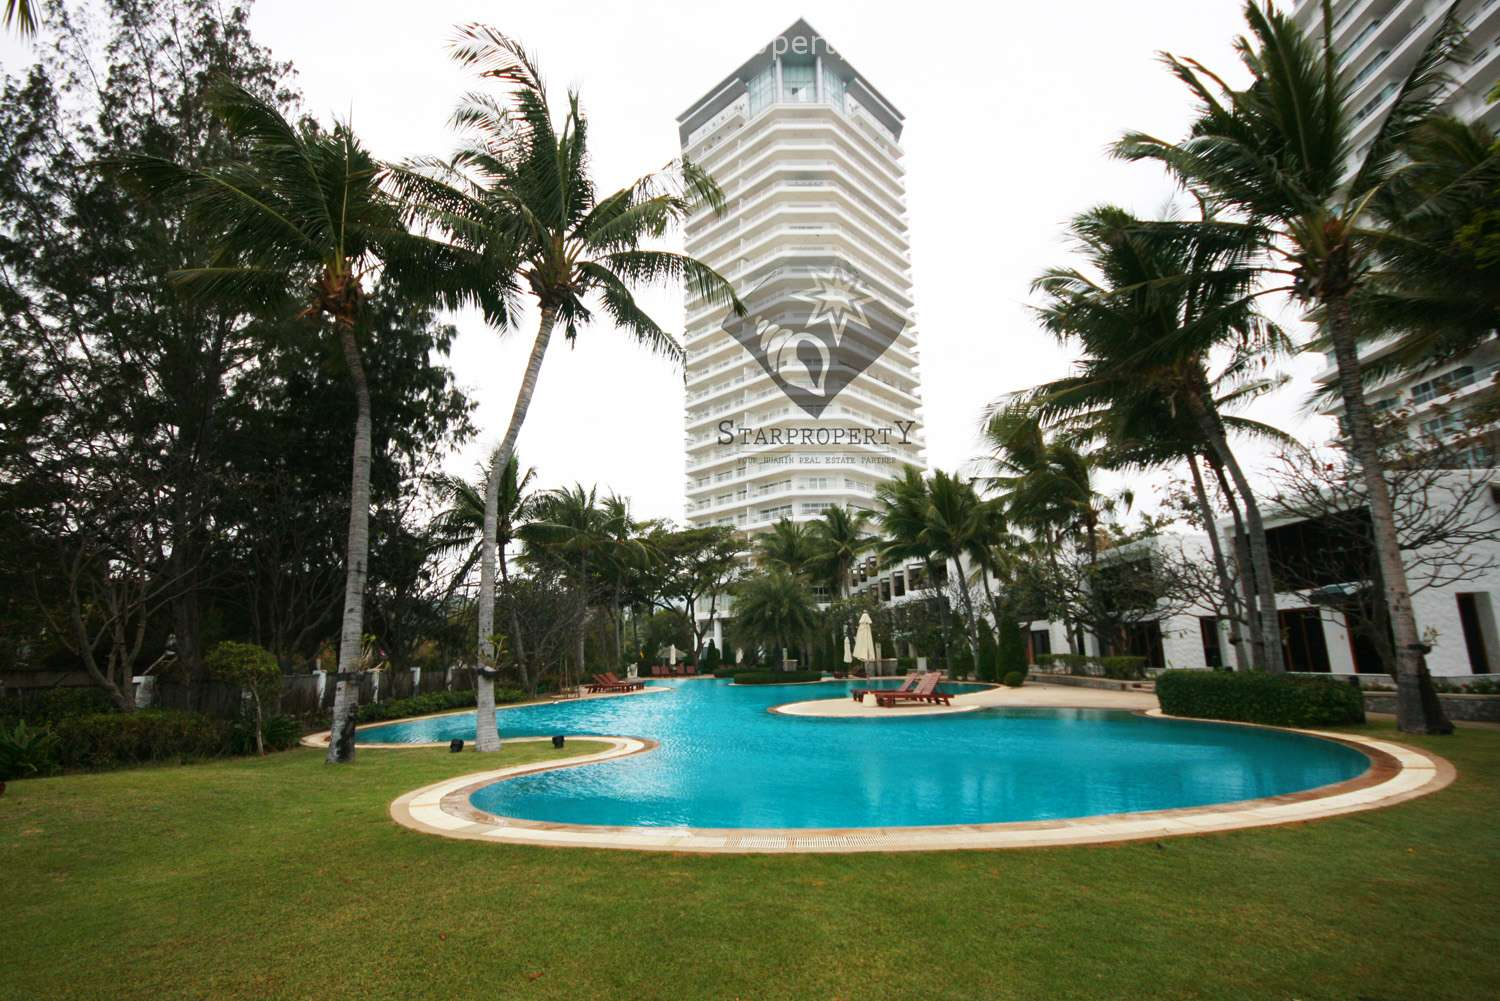 1 Bedroom Condominium for Sale at Baan Lonsai, Hua Hin at Baan Lonsai, Hua Hin